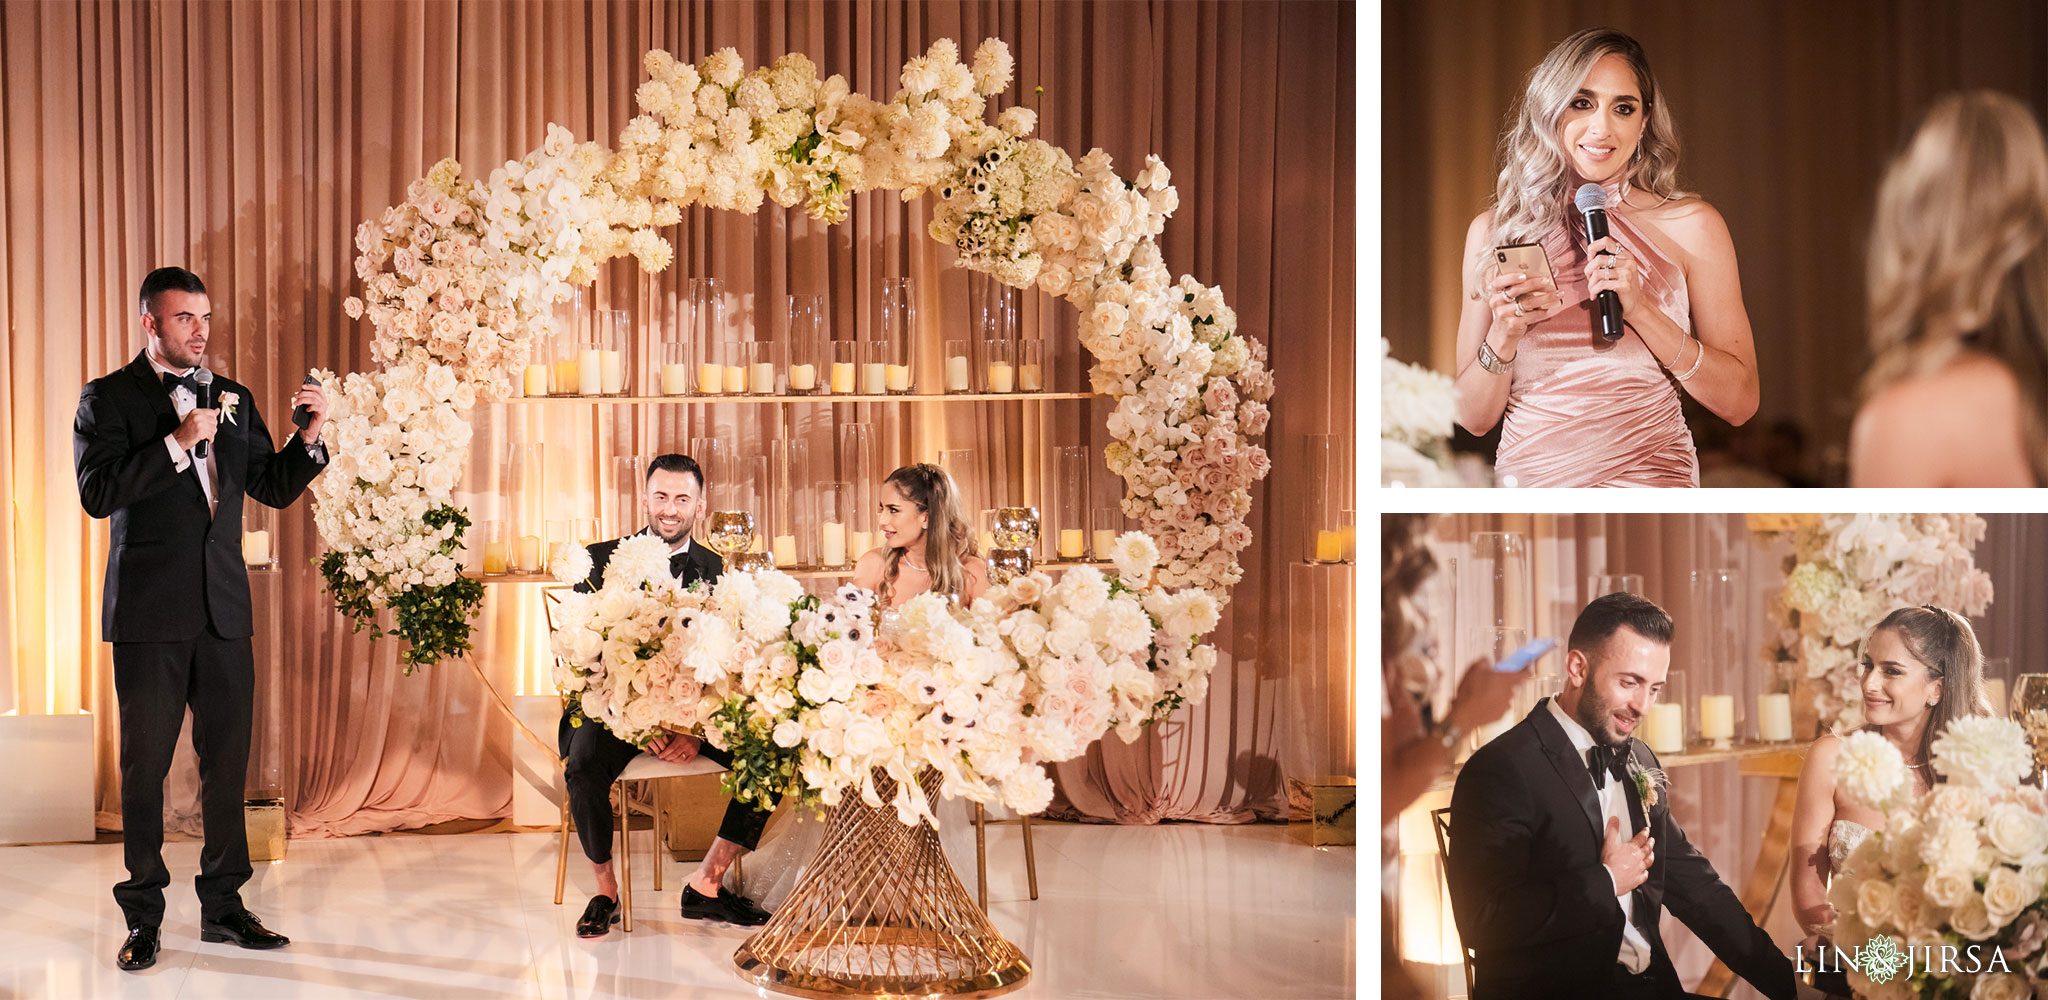 44 montage beverly hills persian wedding photography